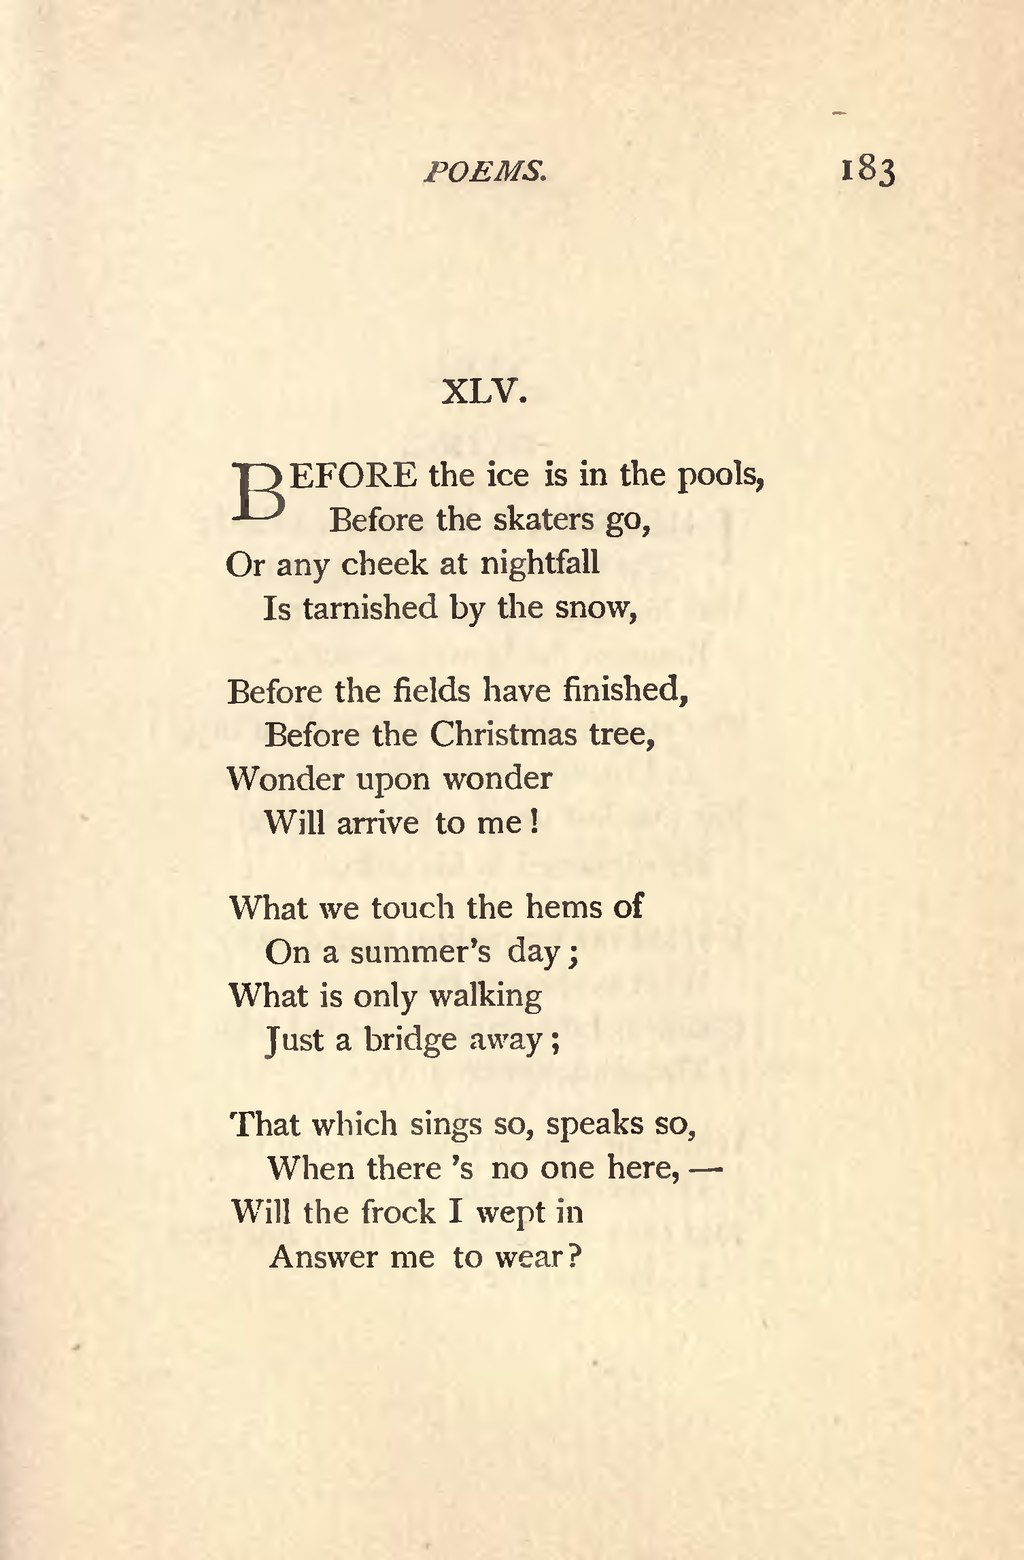 Page Emily Dickinson Poems Third Series 1896 Djvu 197 Wikisource The Free Online Library